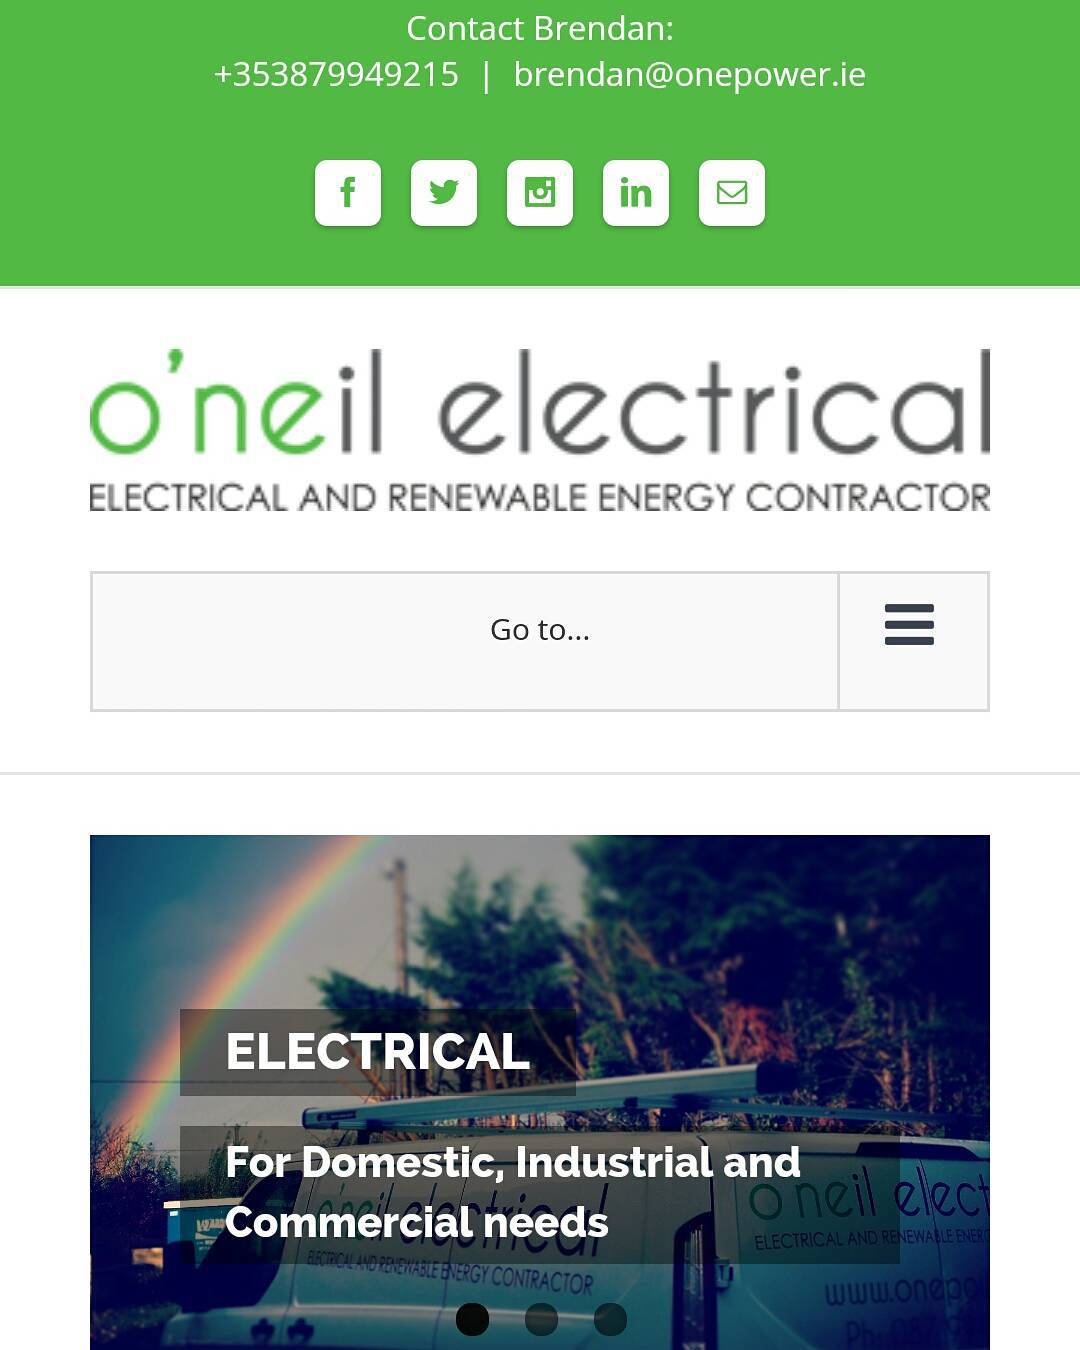 Please check out my new look website.  www.onepower.ie  To arrange a free Solar Pv or Wind turbine site suitable survey please contact me on 087 9949215 or email me at Brendan@onepower.ie  T&C apply